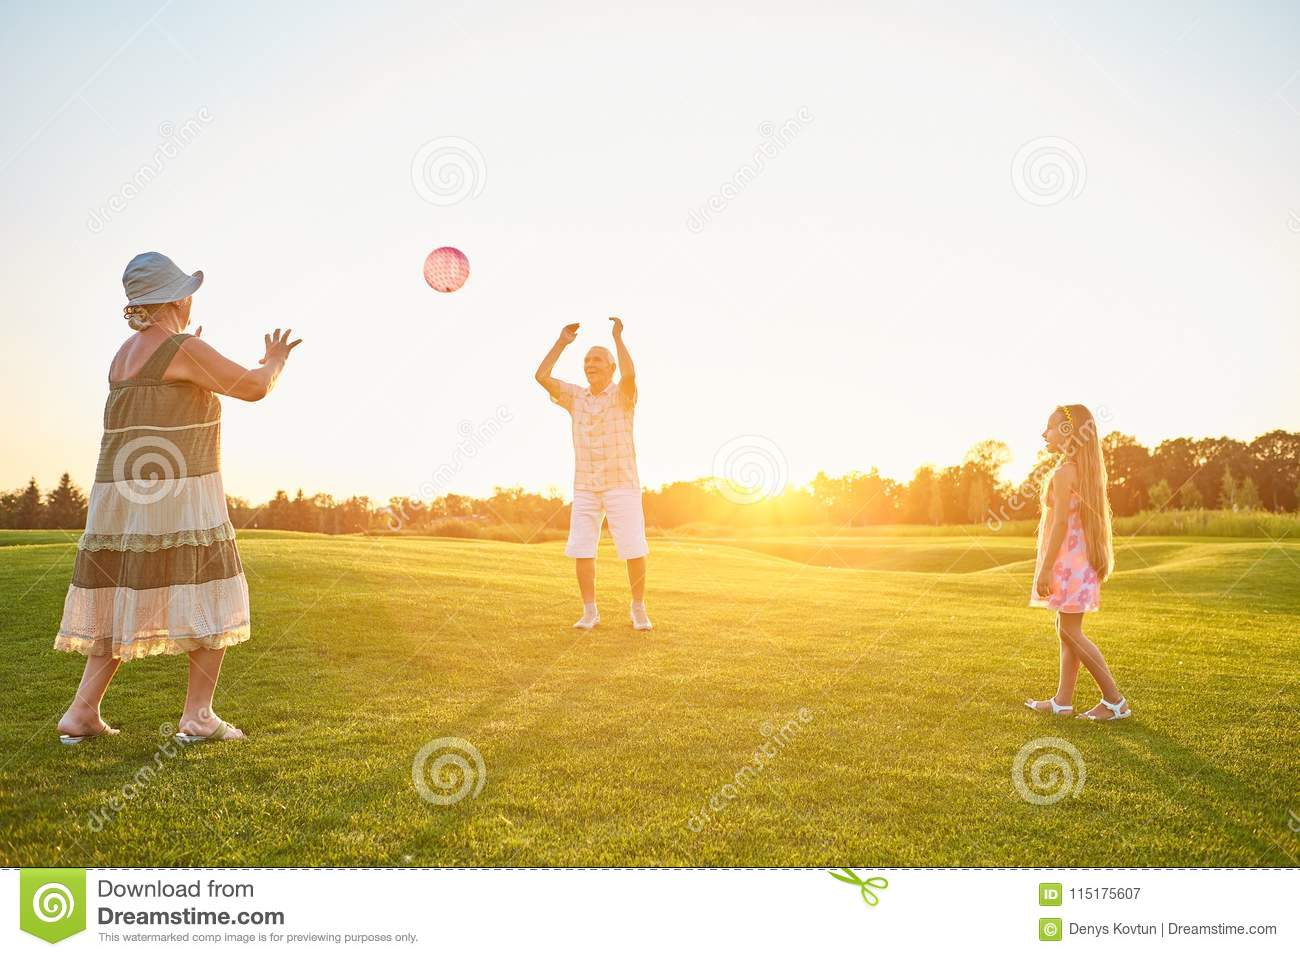 Seniors with granddaughter playing ball.